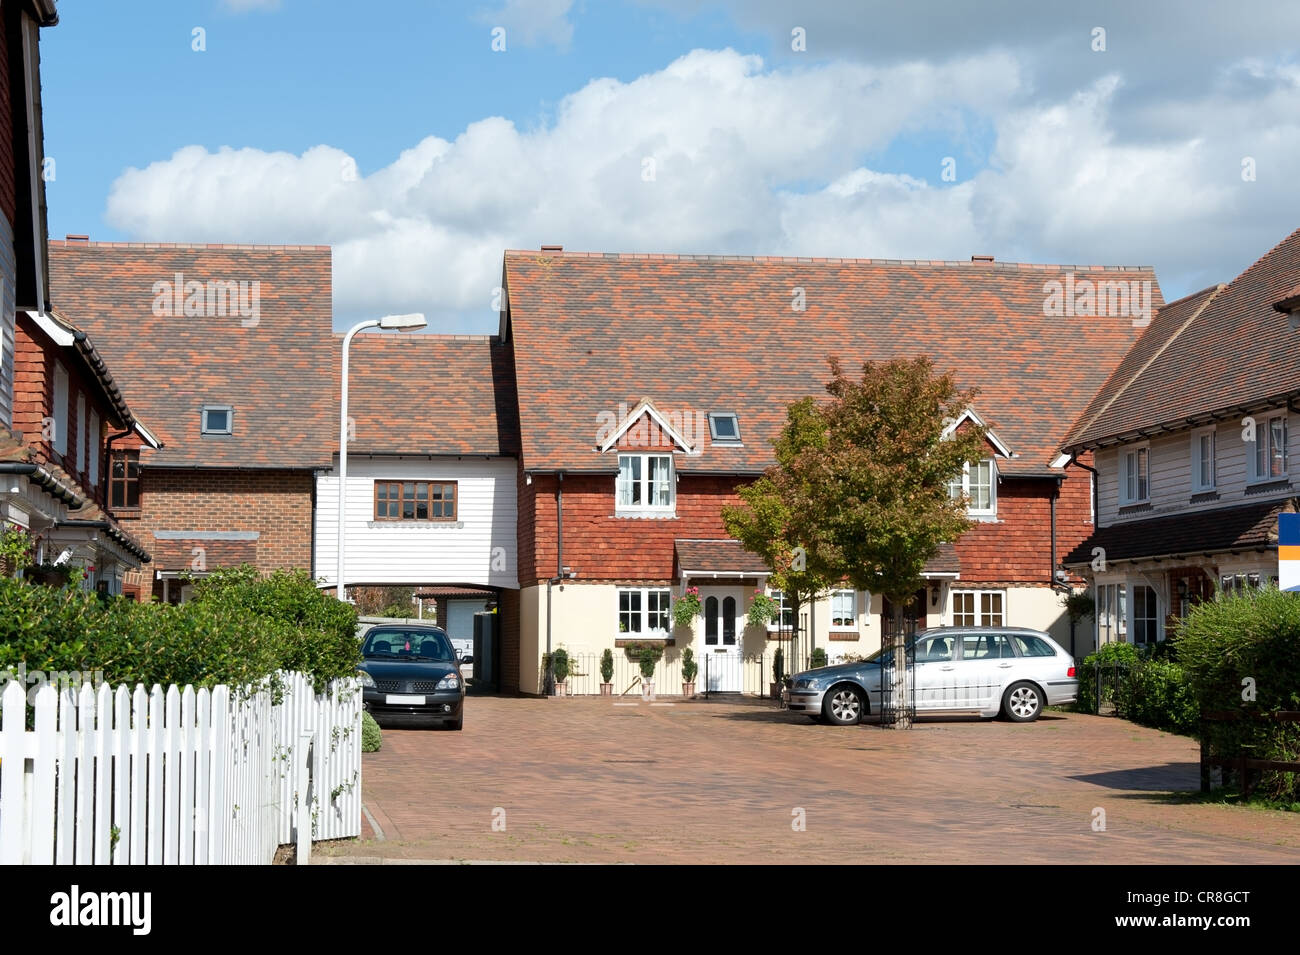 Newly built terraced townhouses - UK Stock Photo